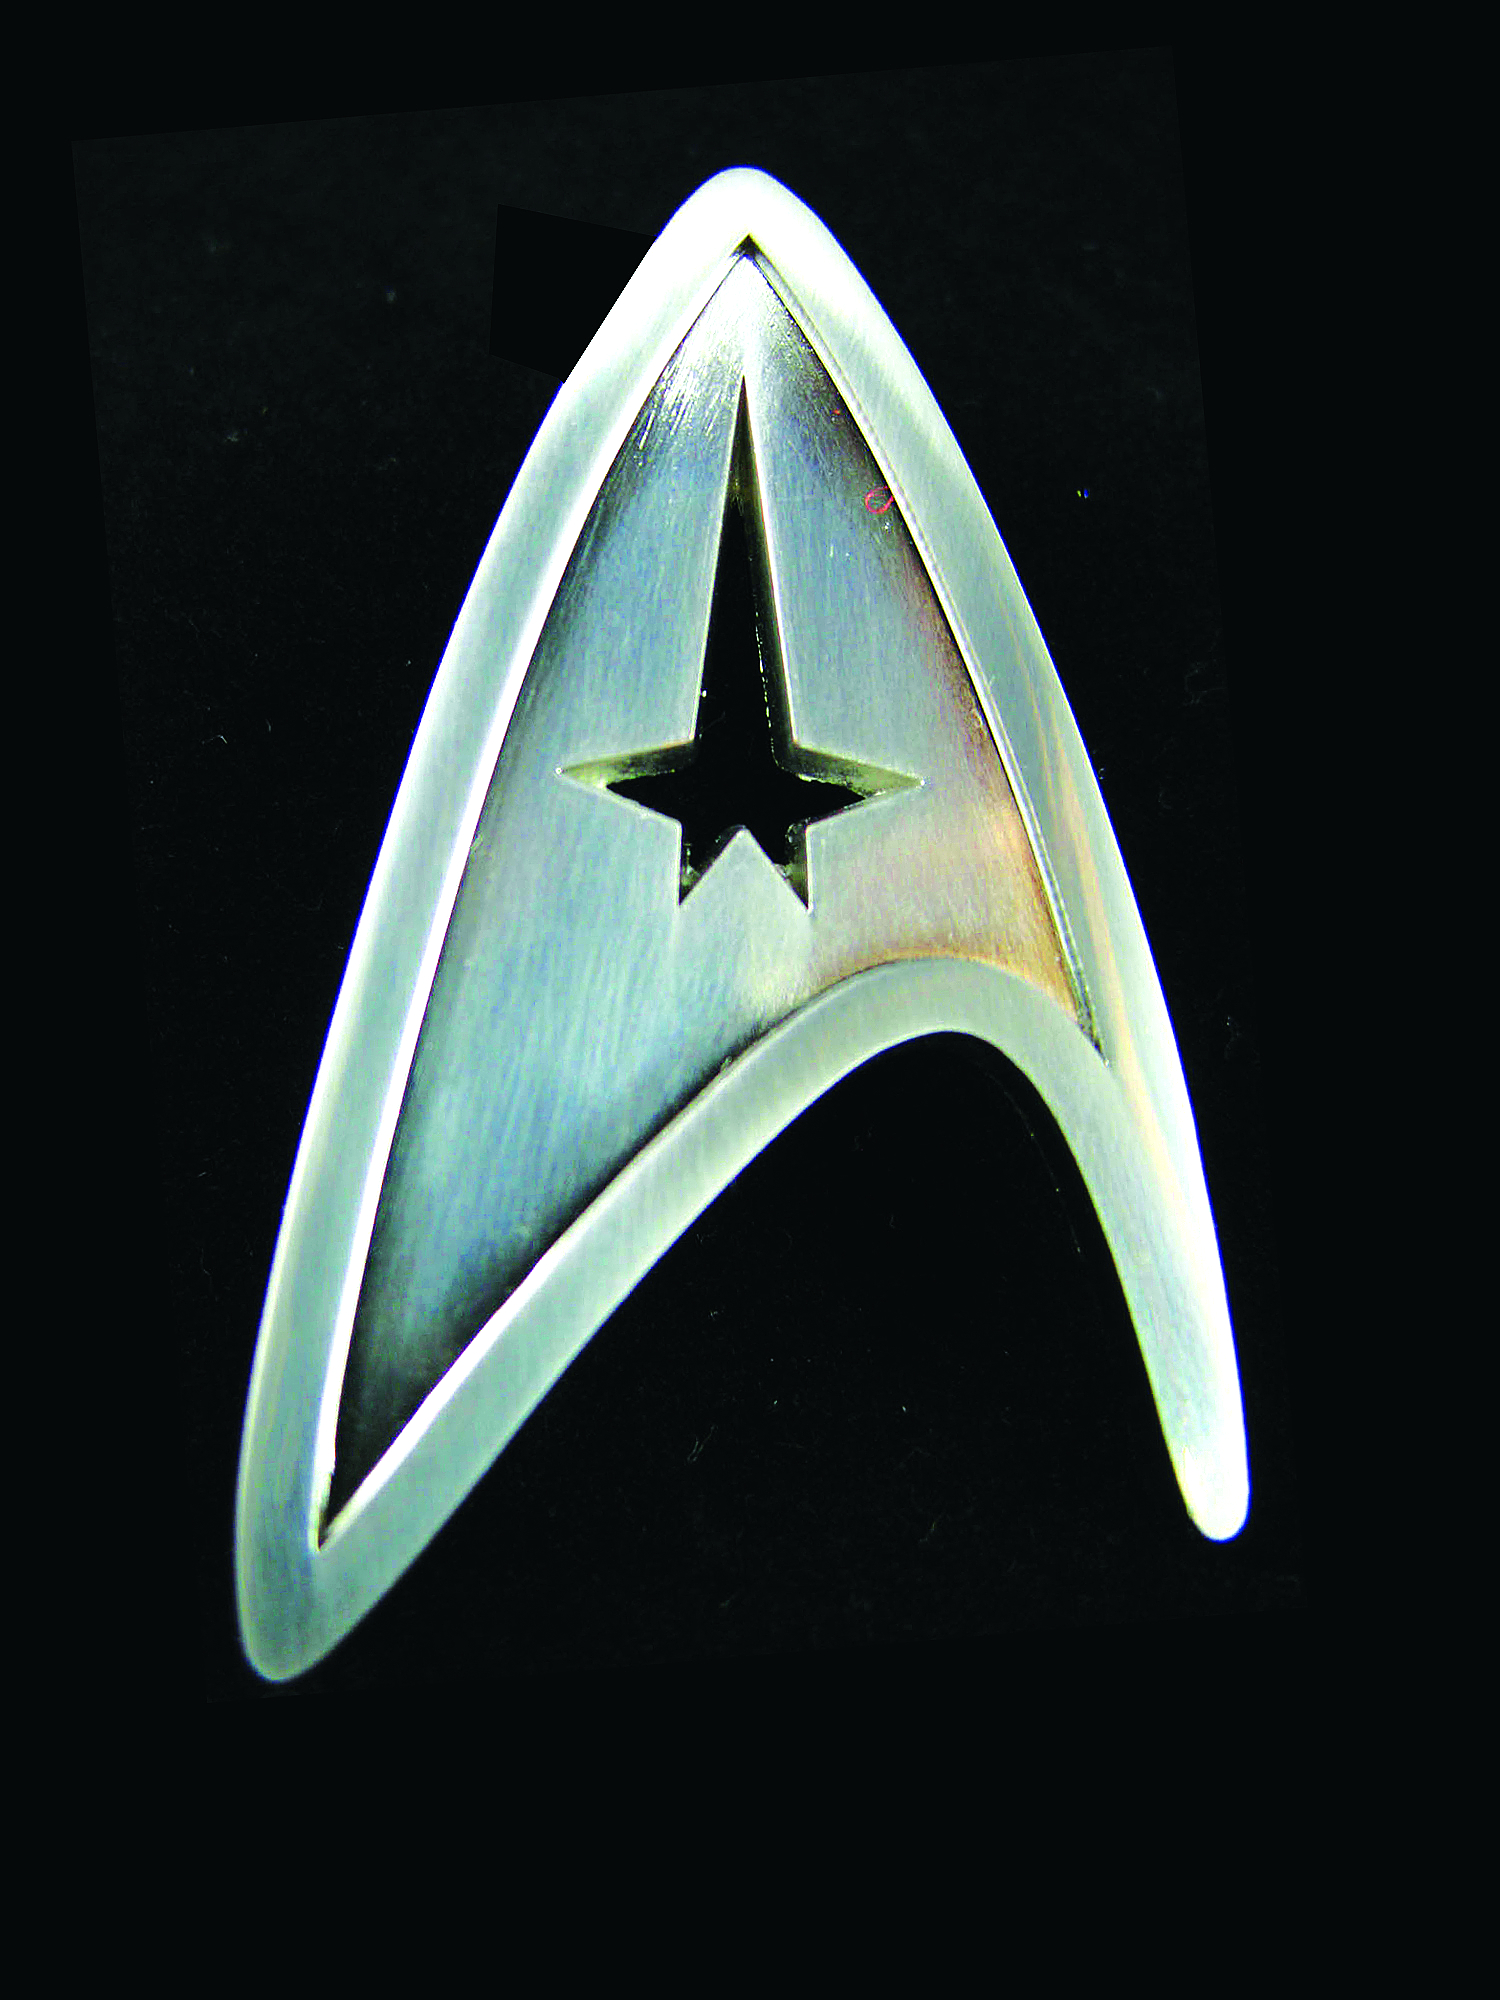 STAR TREK STARFLEET COMMAND DIVISION BADGE